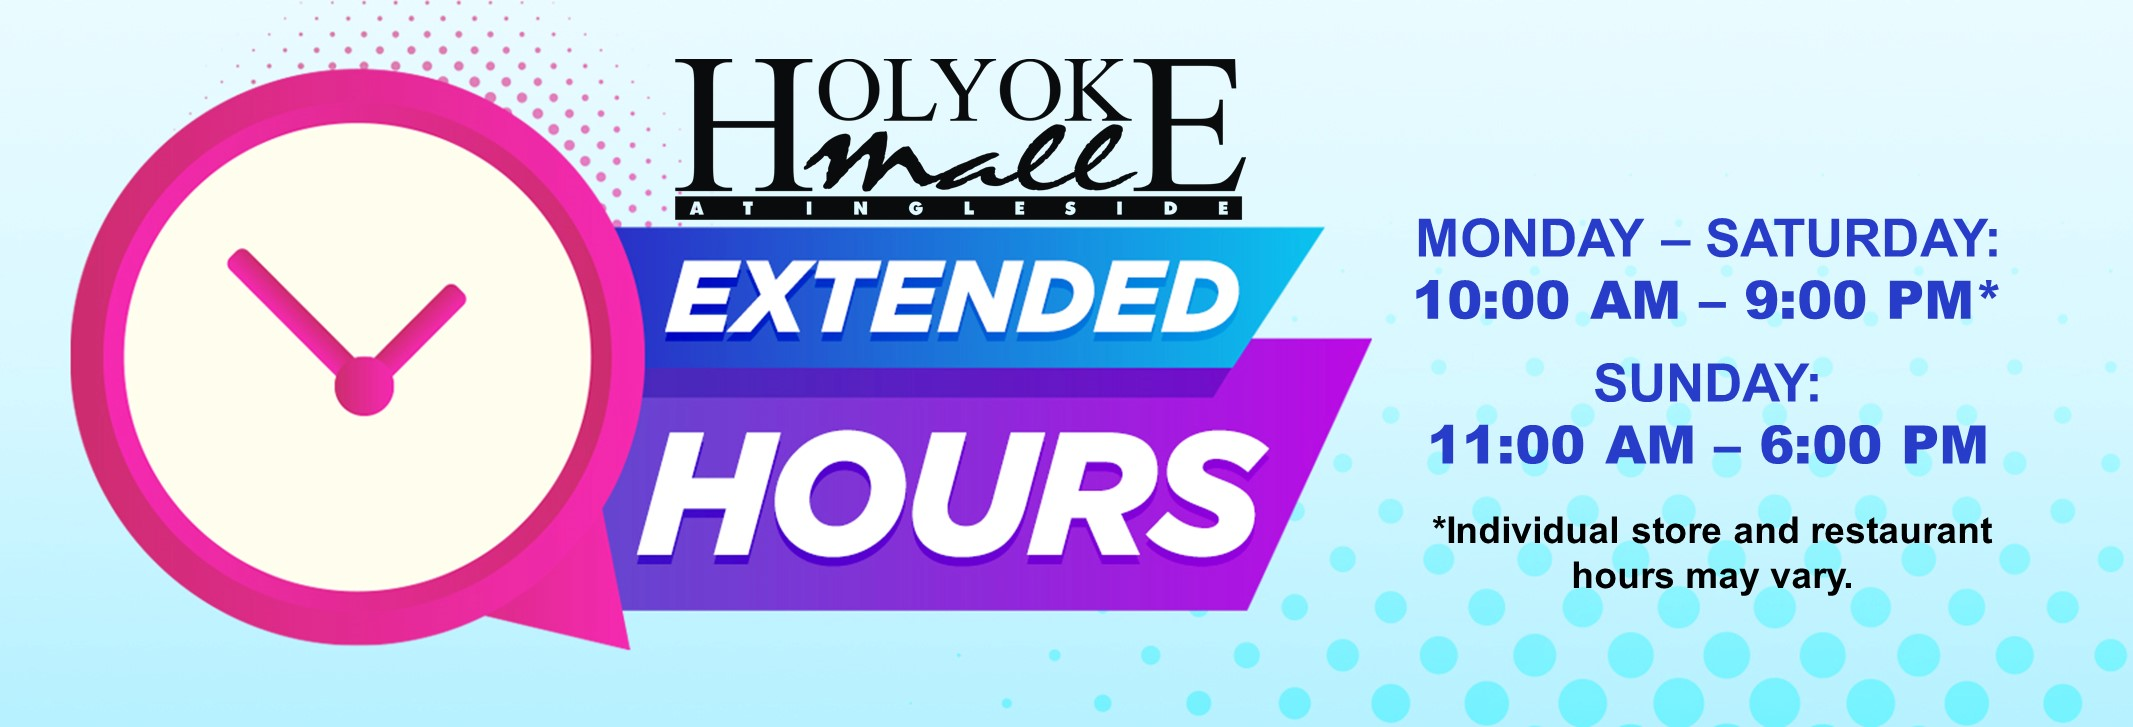 Holyoke Mall extended hours Blog Post Feature Image